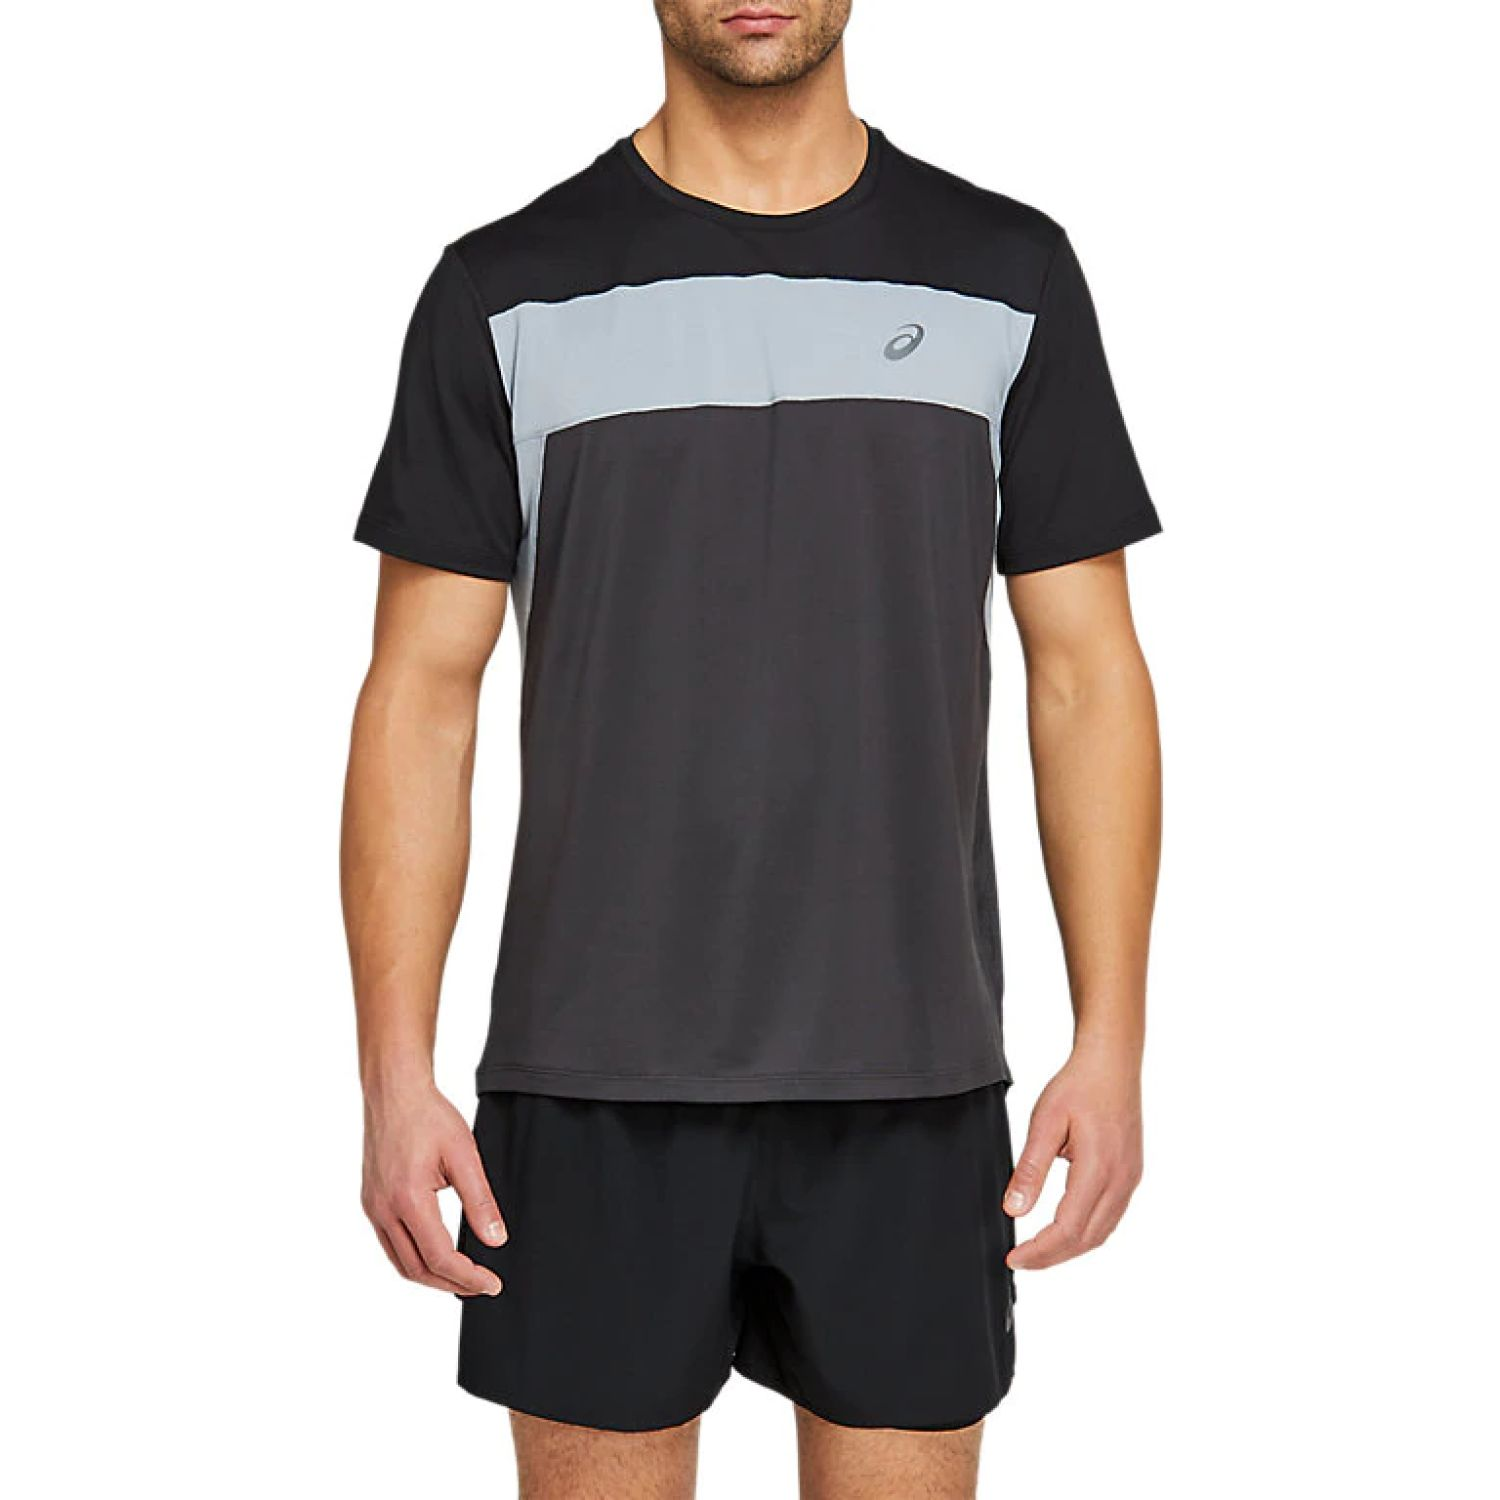 Asics M Race Ss Top Grphte Gry Perf Blk Negro Polos